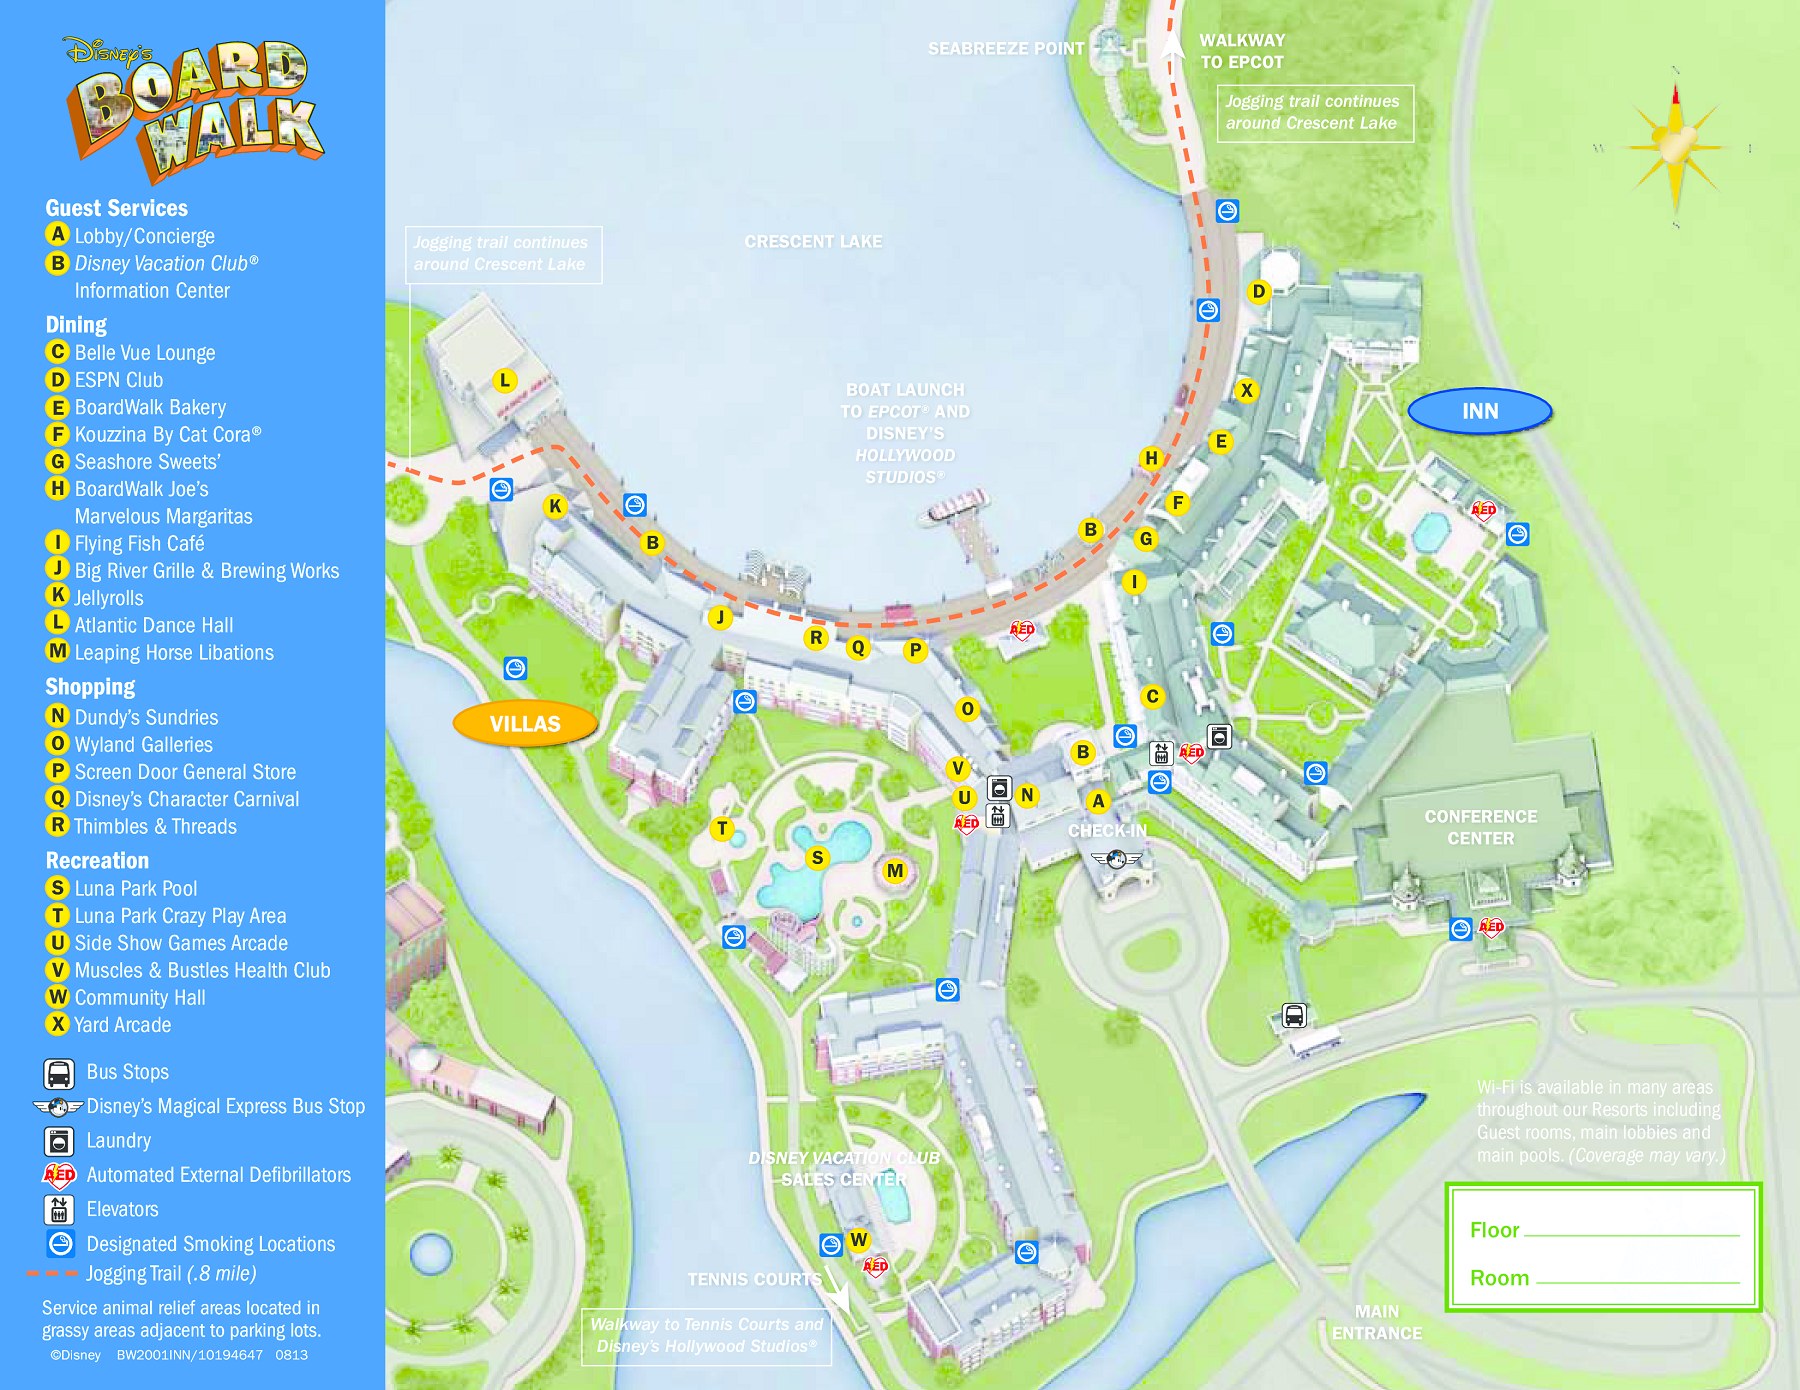 Walt disney world maps wdw planning disneys boardwalk inn villas gumiabroncs Choice Image